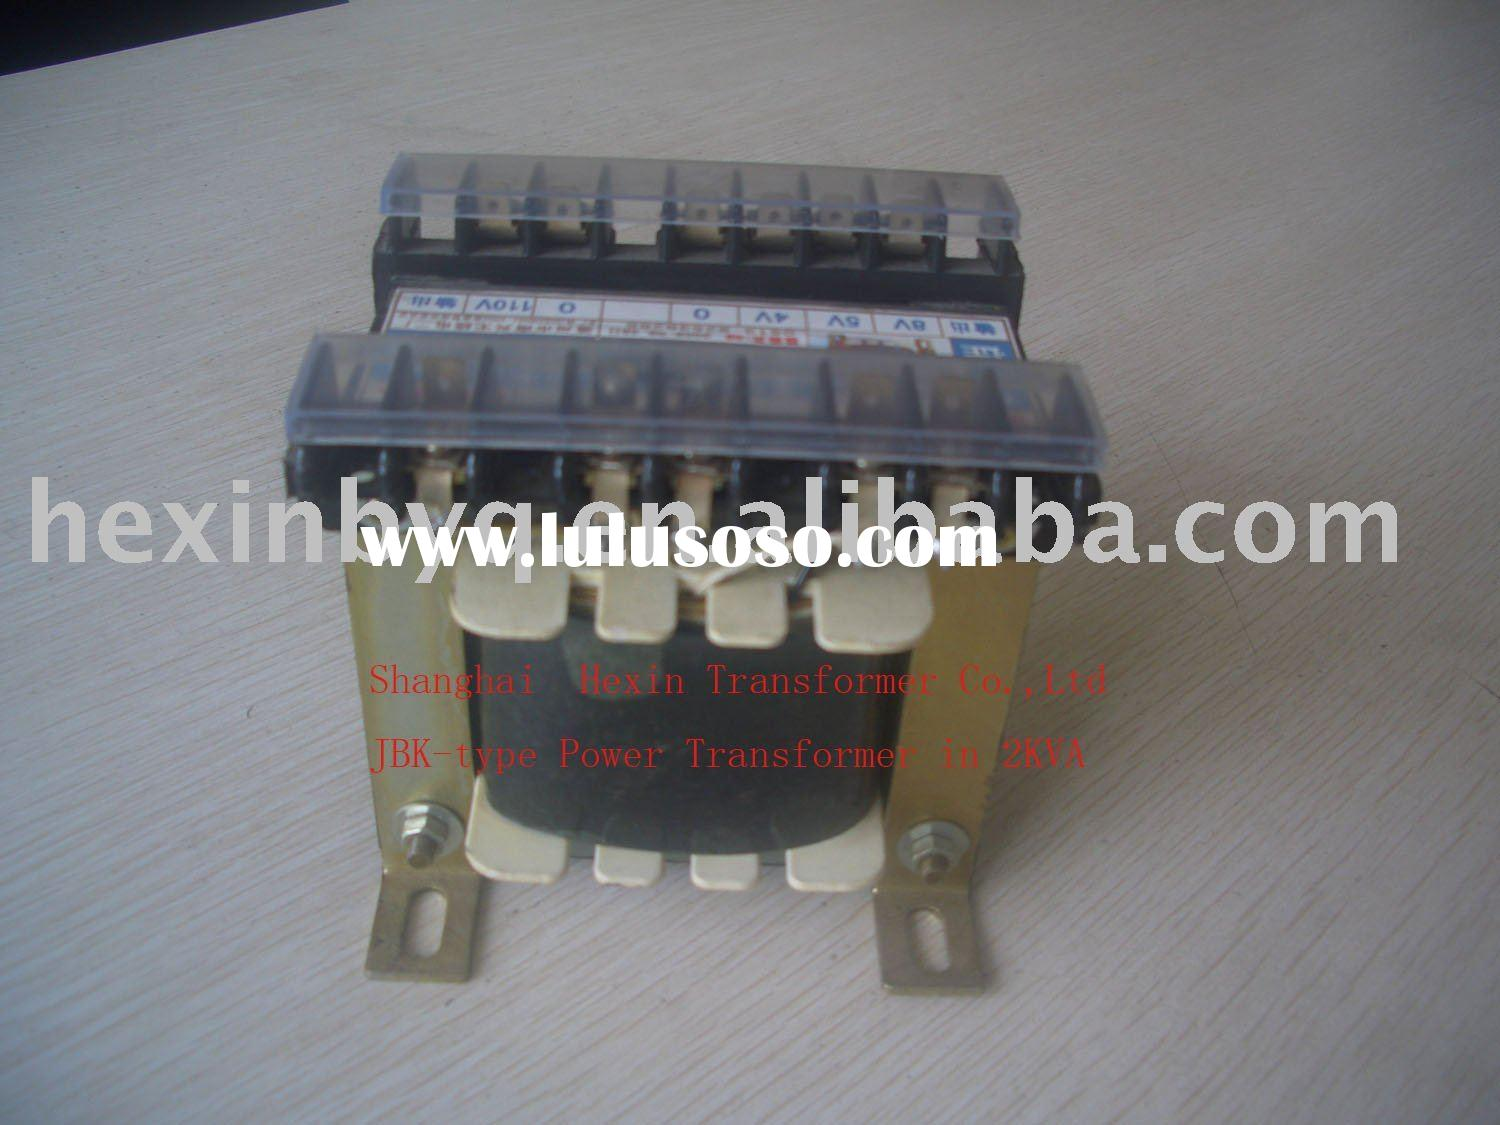 Machine Control Transformer in AC Voltage